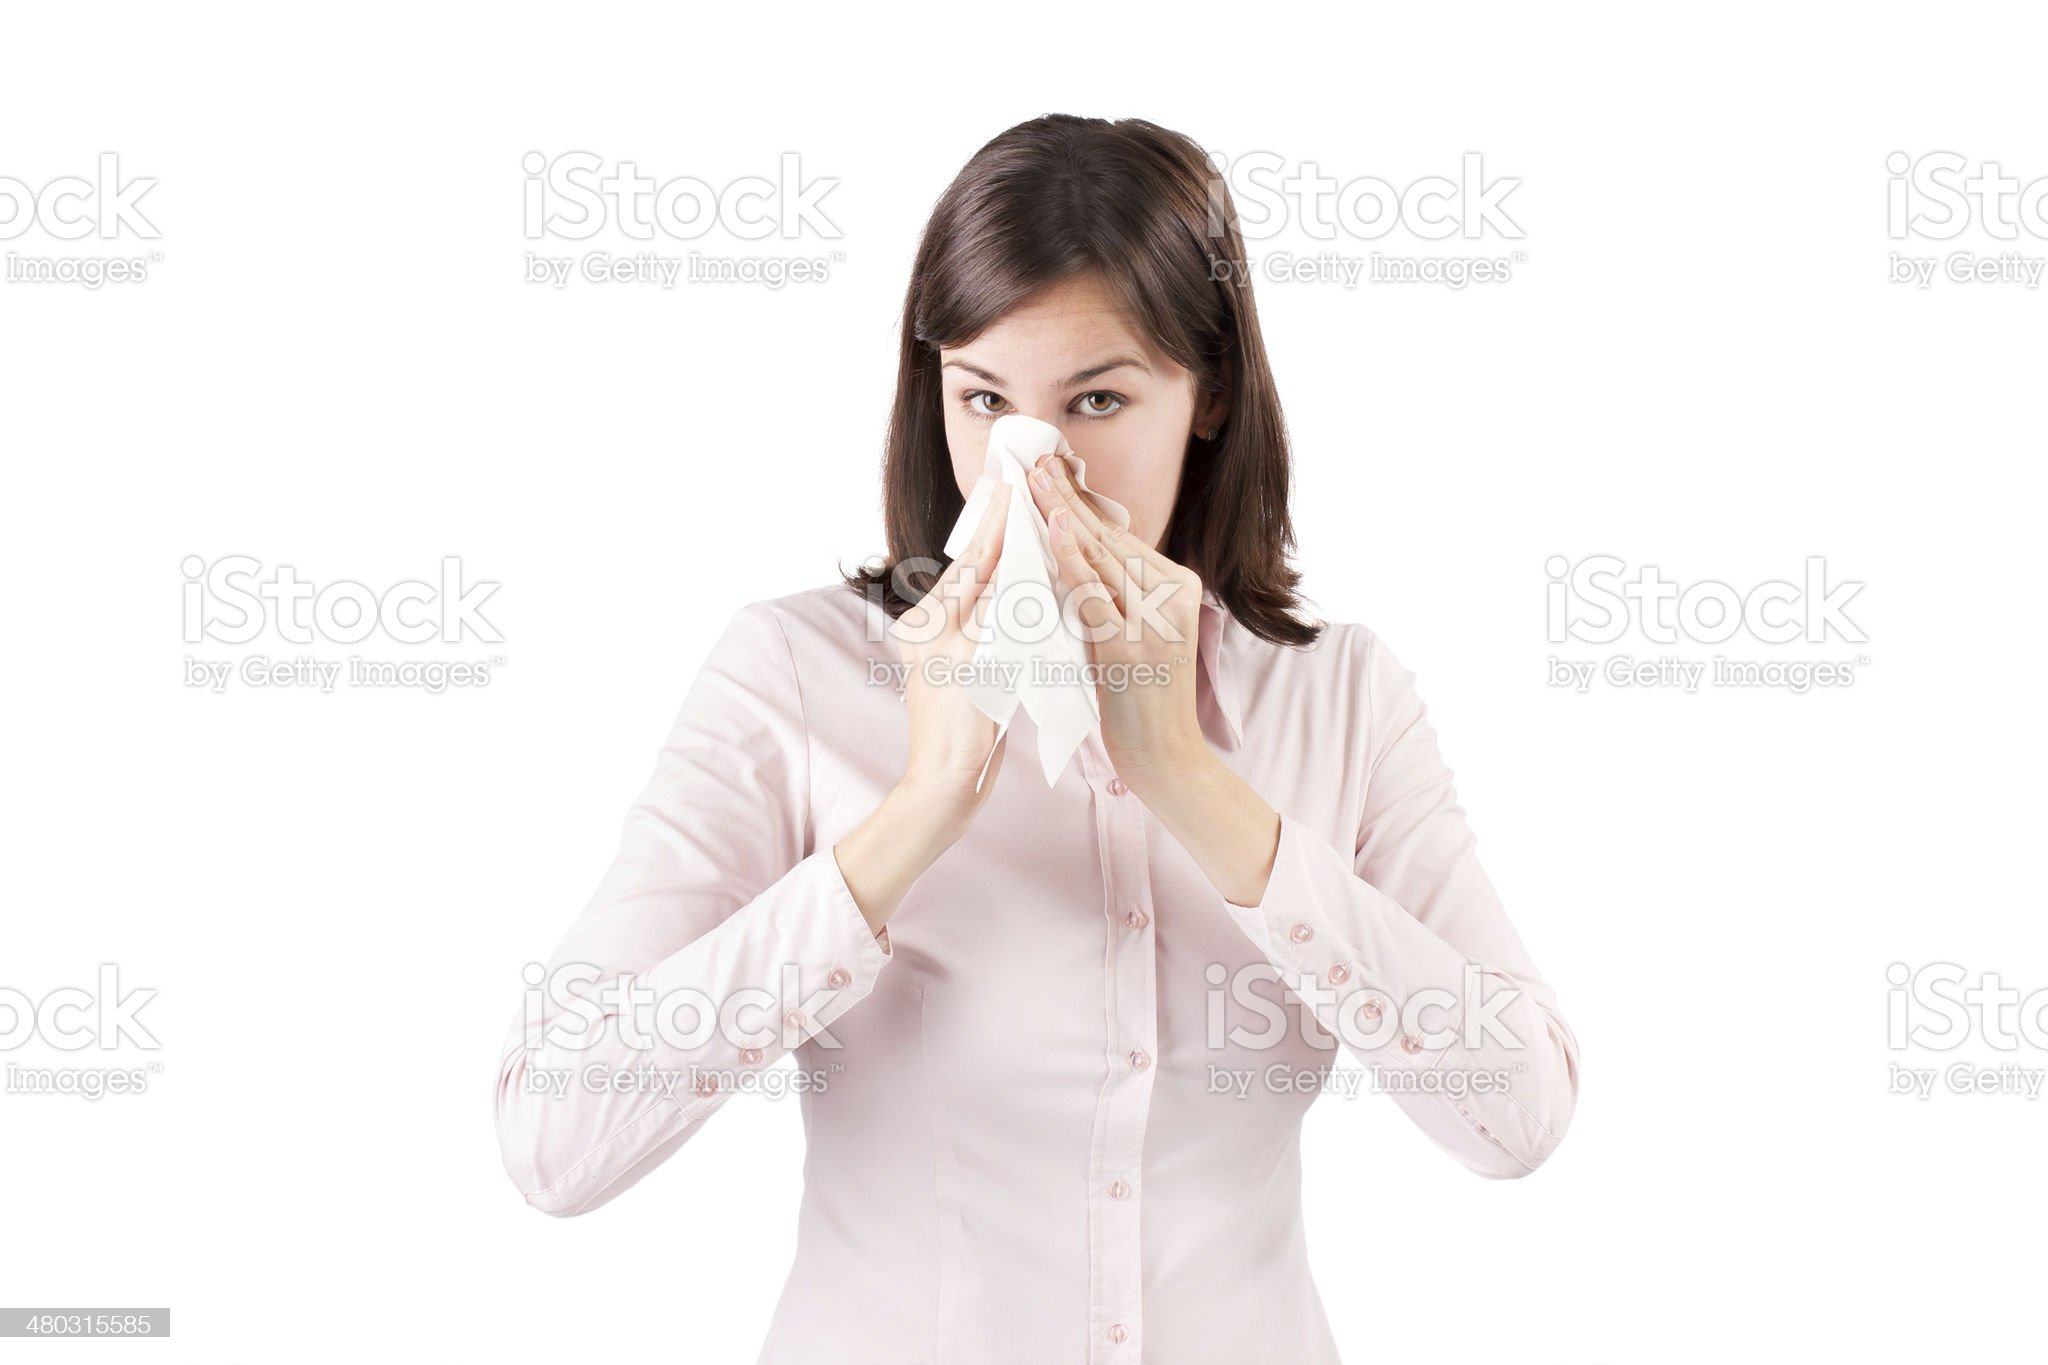 Beautiful young business woman with a cold blowing nose. royalty-free stock photo